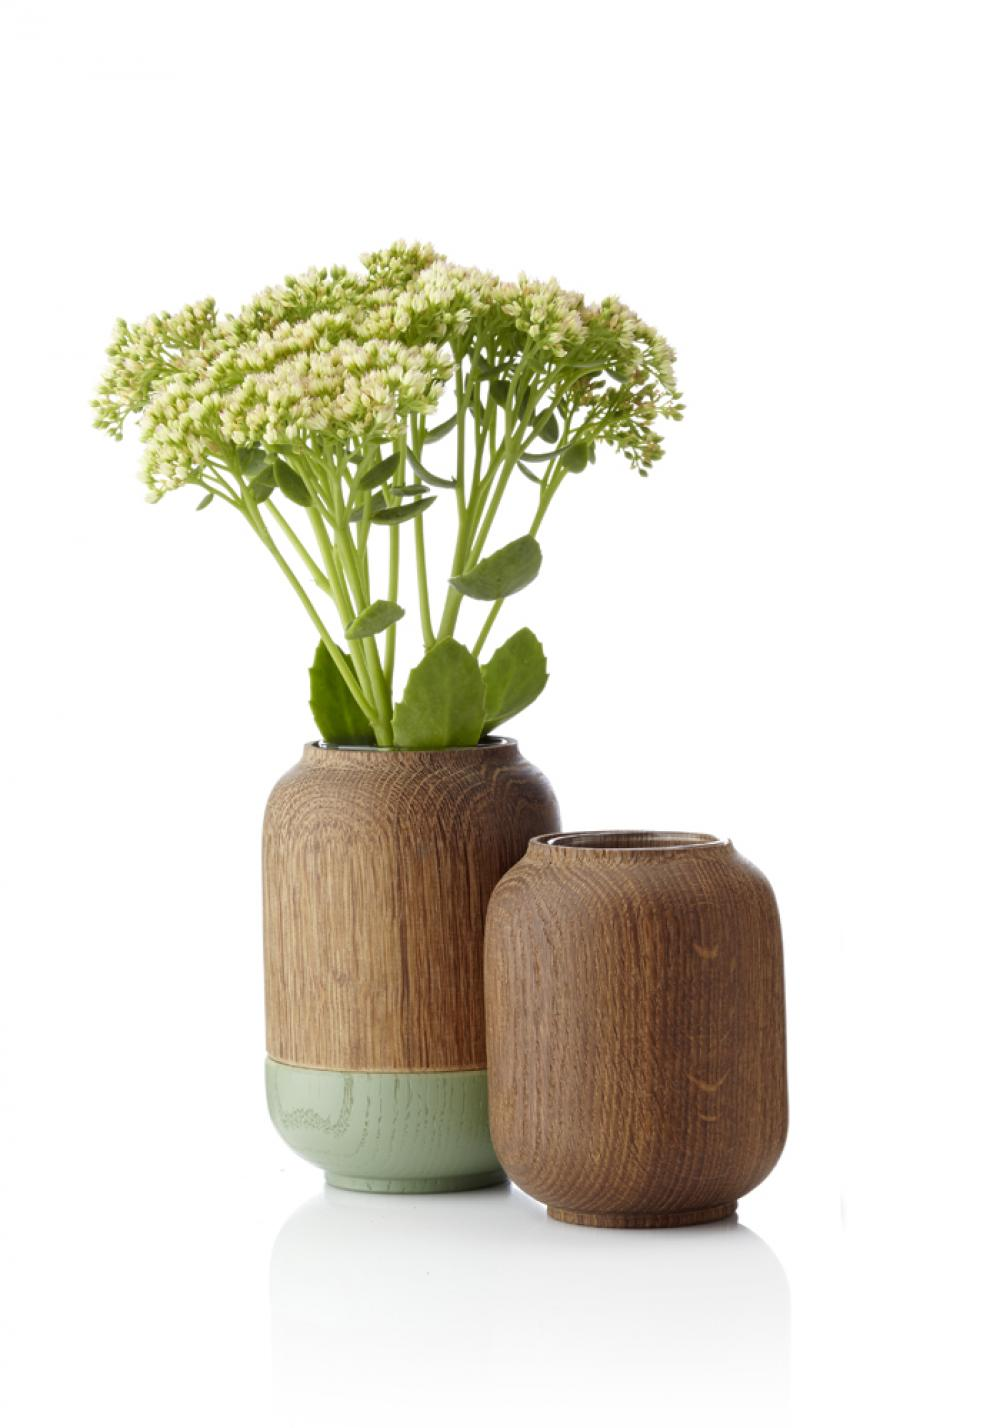 applicata die kleine poppy vase von anders norgaard im shop. Black Bedroom Furniture Sets. Home Design Ideas